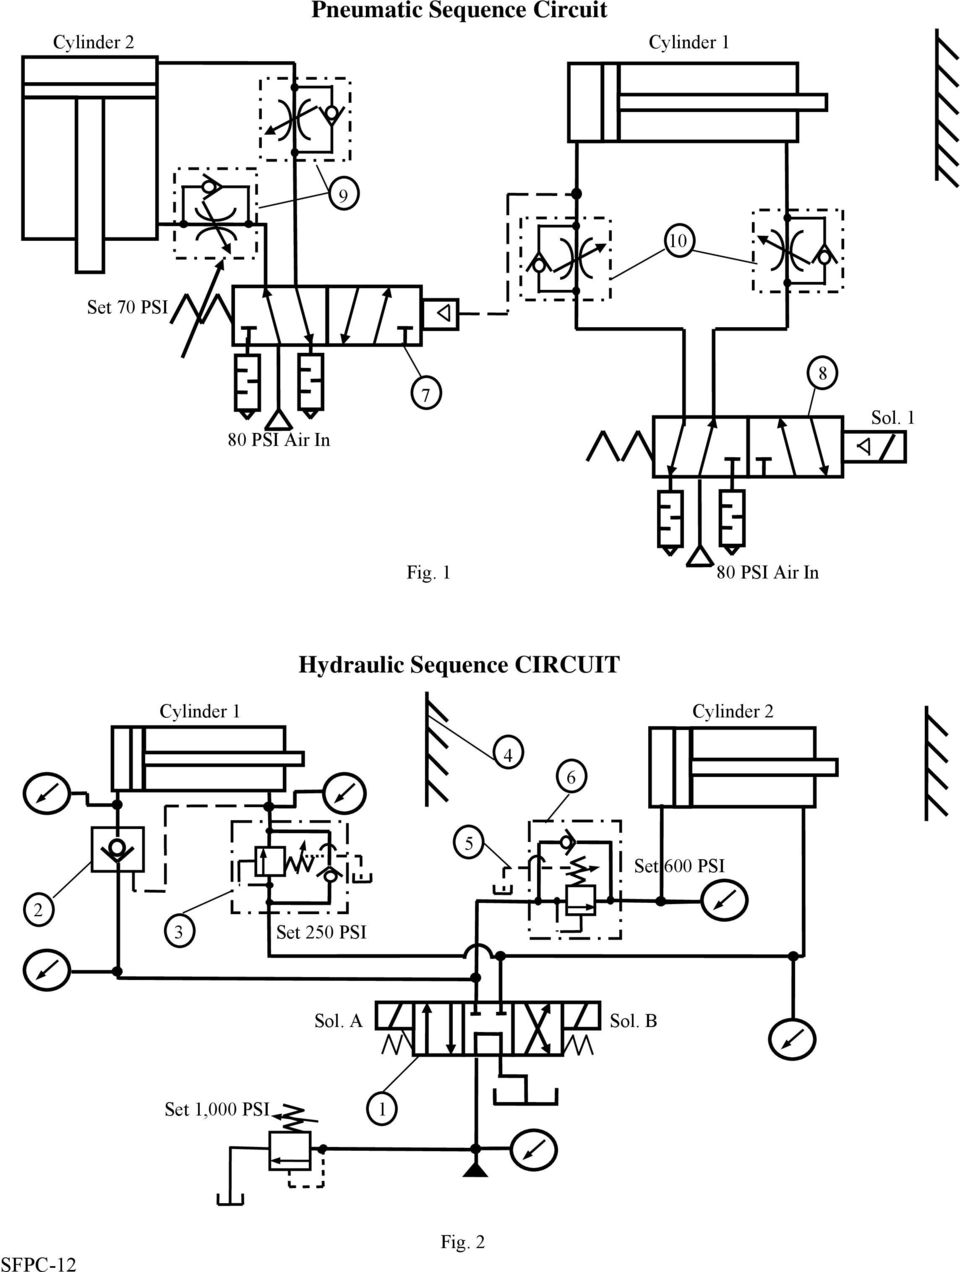 1 80 PSI Air In Hydraulic Sequence CIRCUIT Cylinder 1